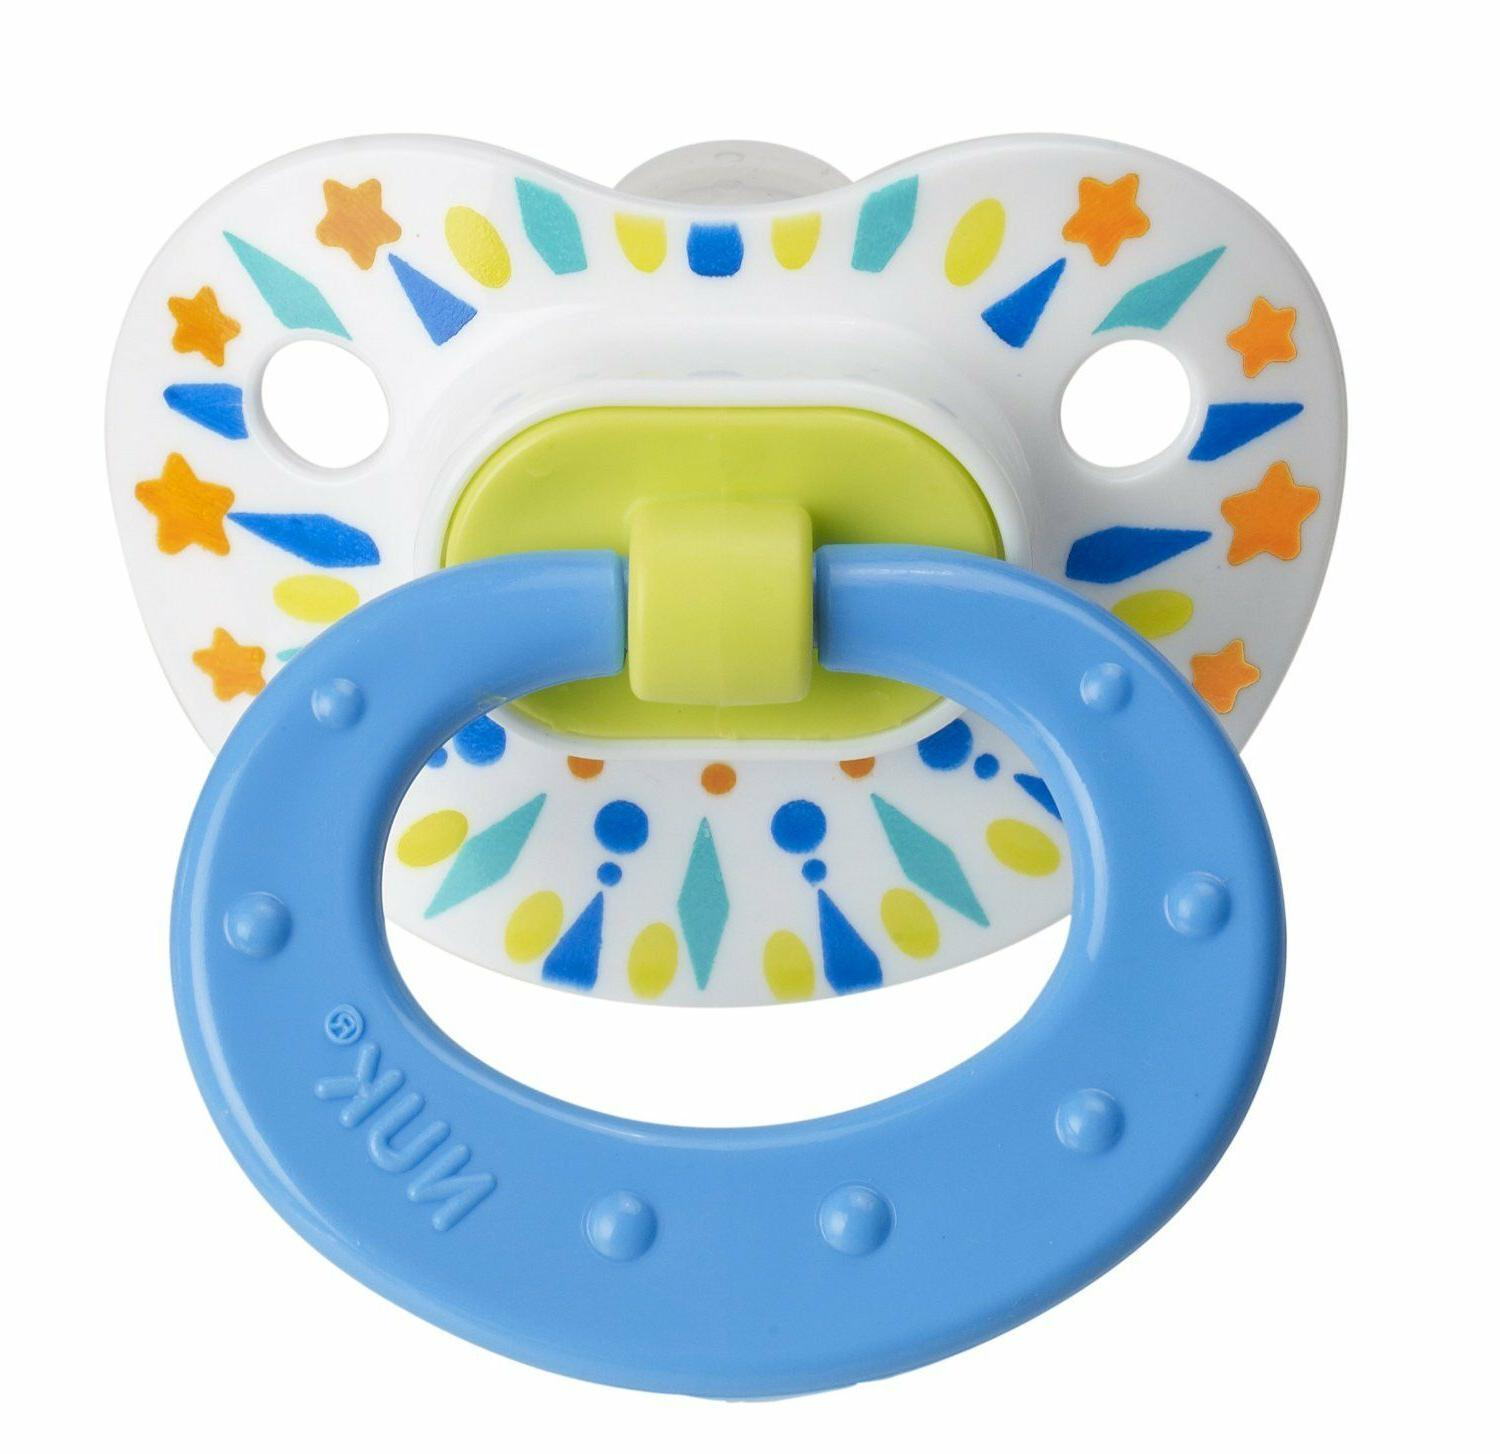 Nuk Tye Dye Pacifier Colors